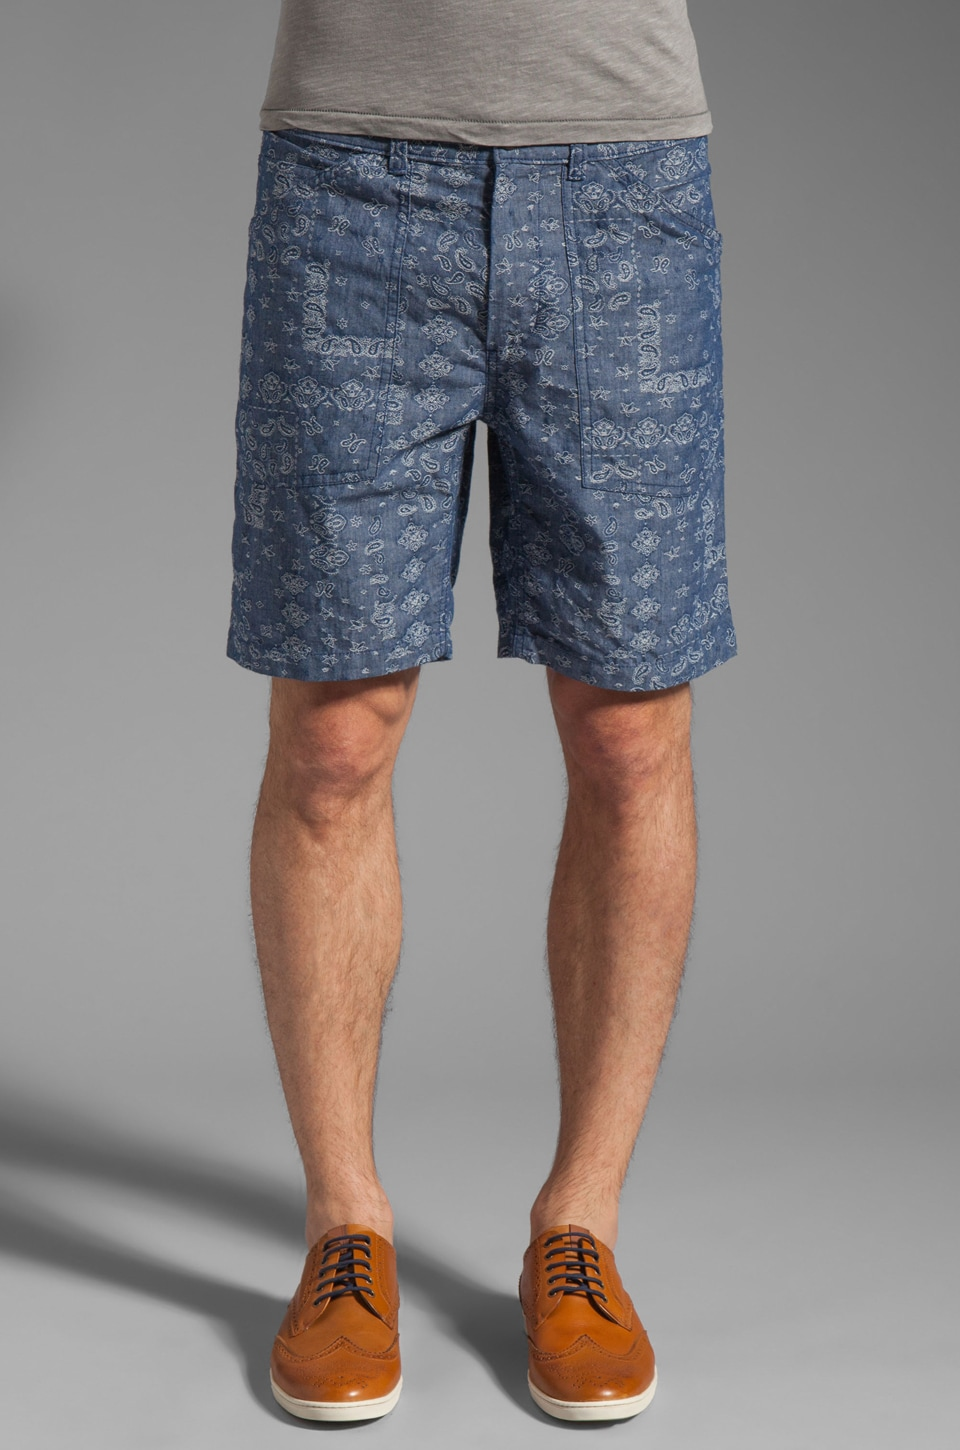 Steven Alan Matt Short in Handkerchief Blue